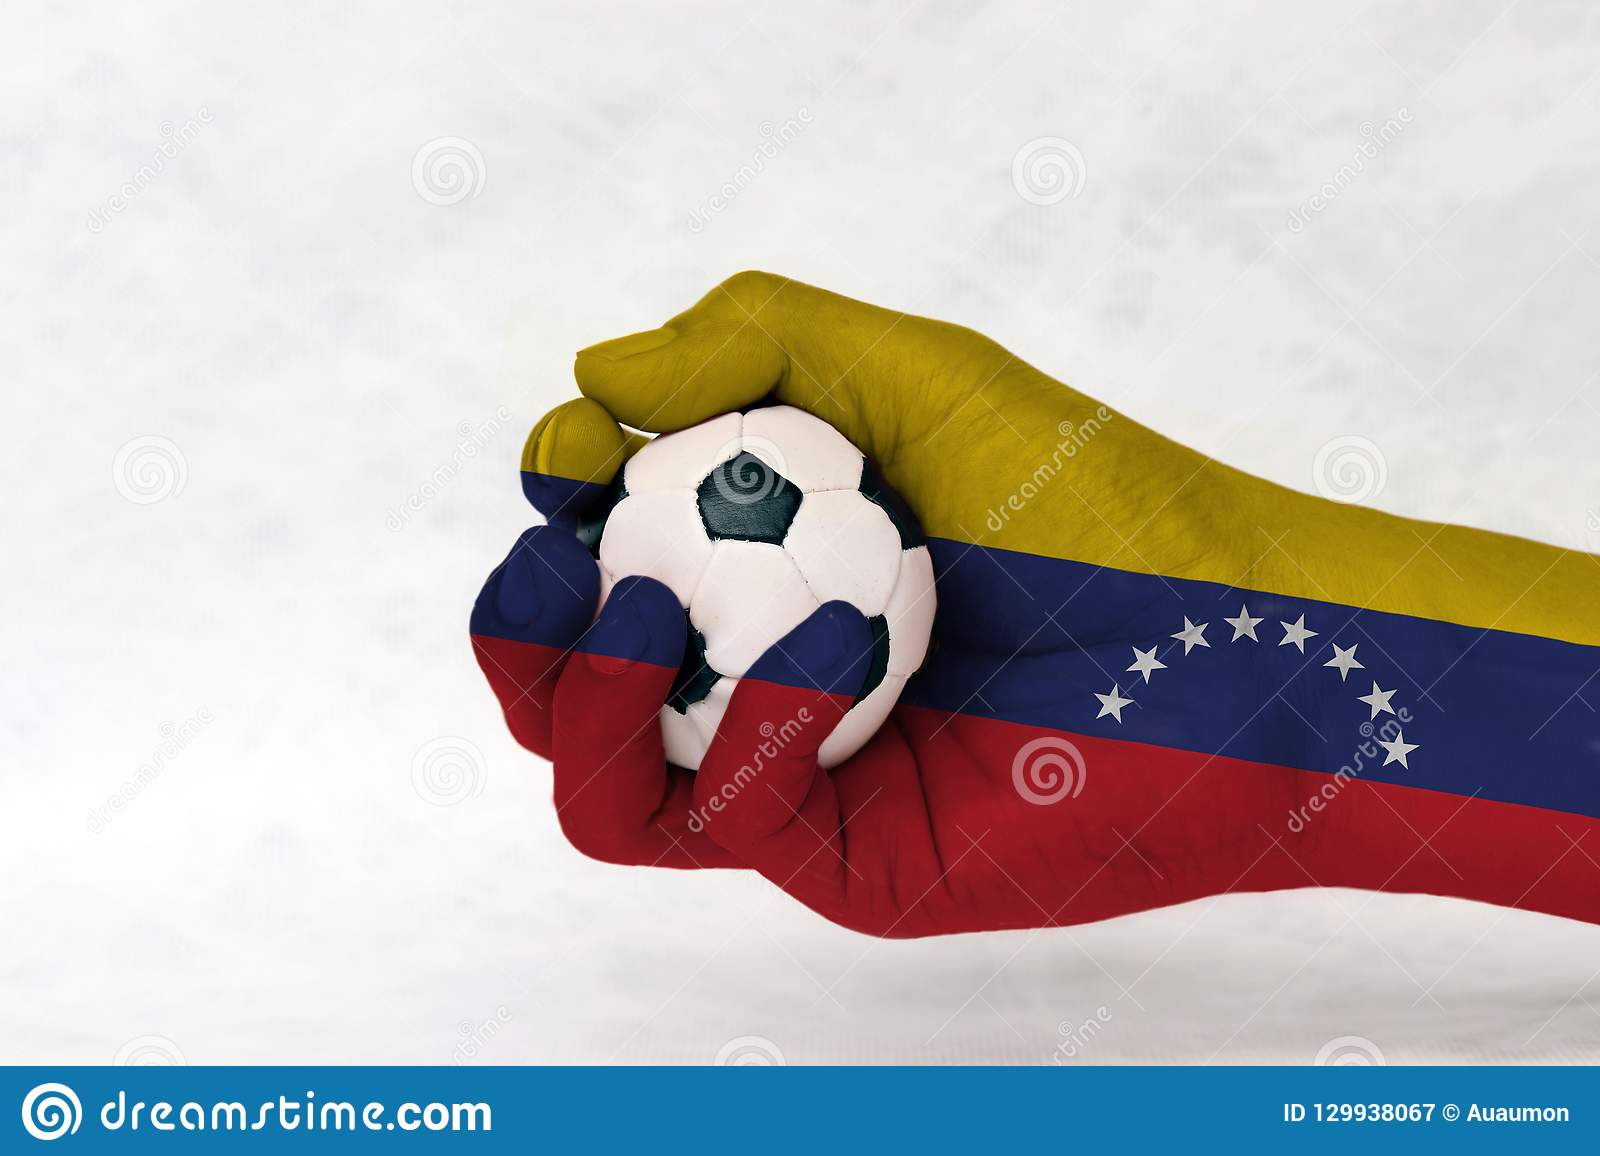 Mini ball of football in Venezuela flag painted hand on white background.